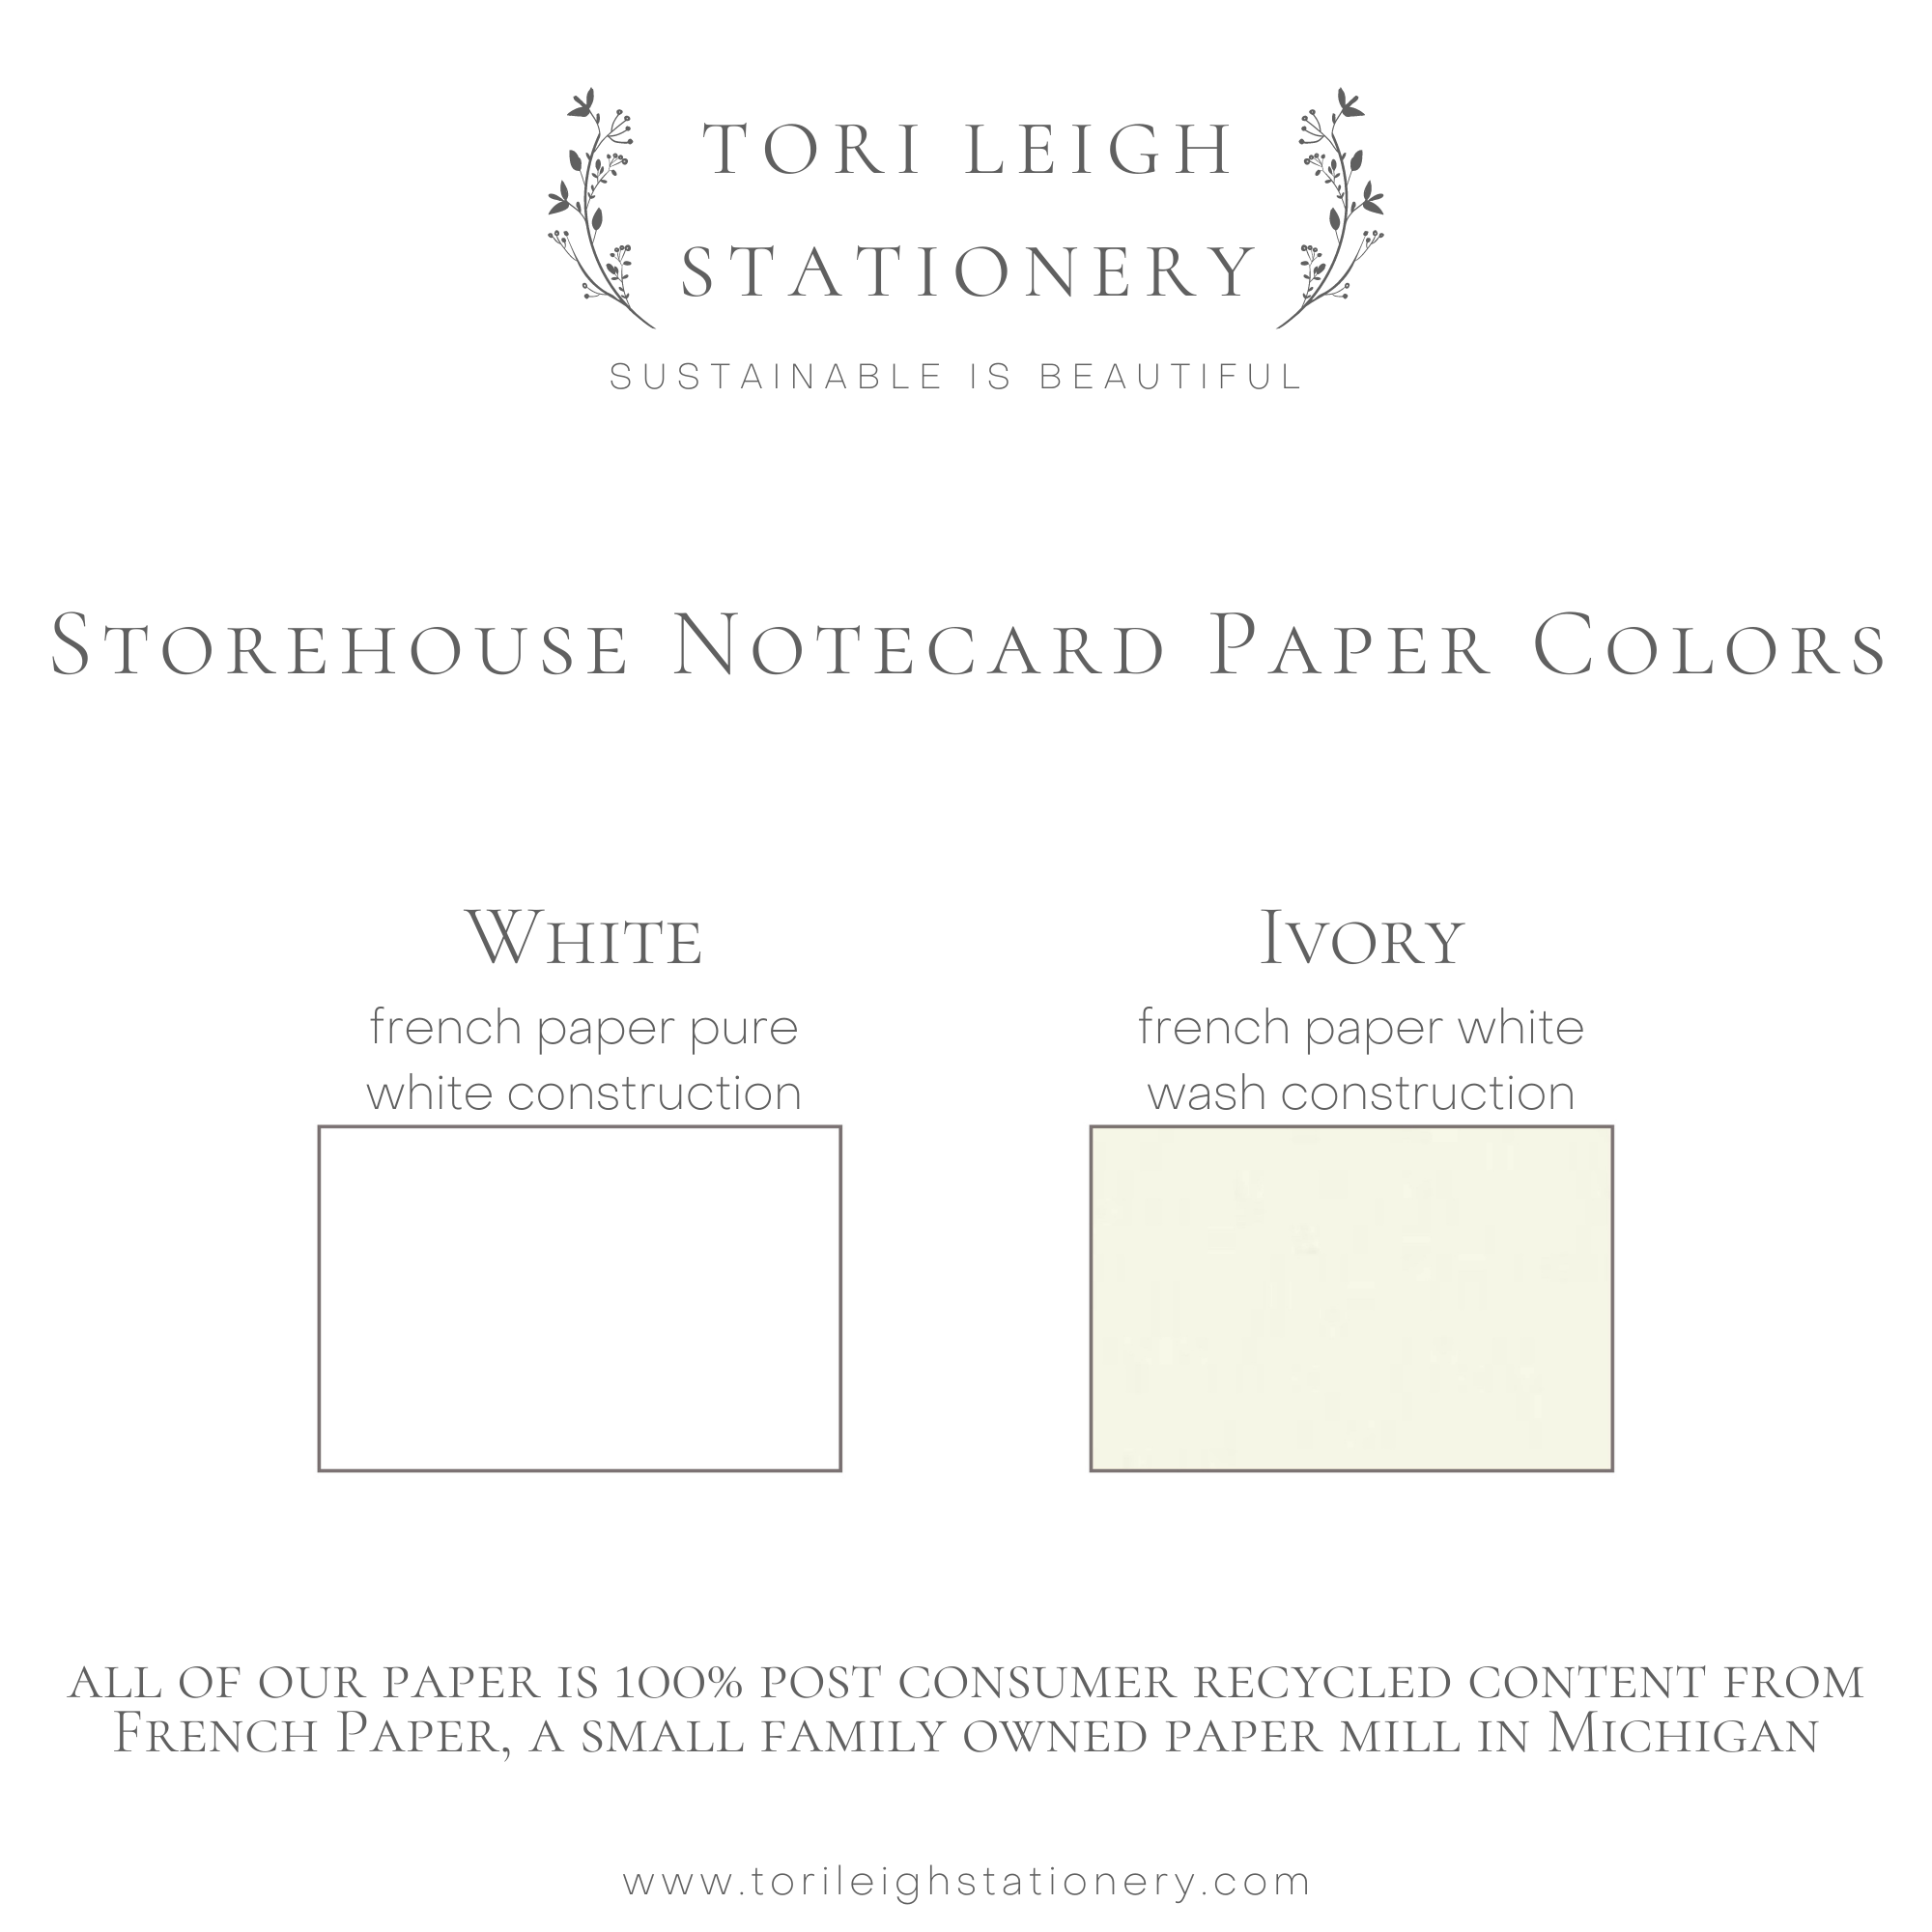 The Storehouse Notecards